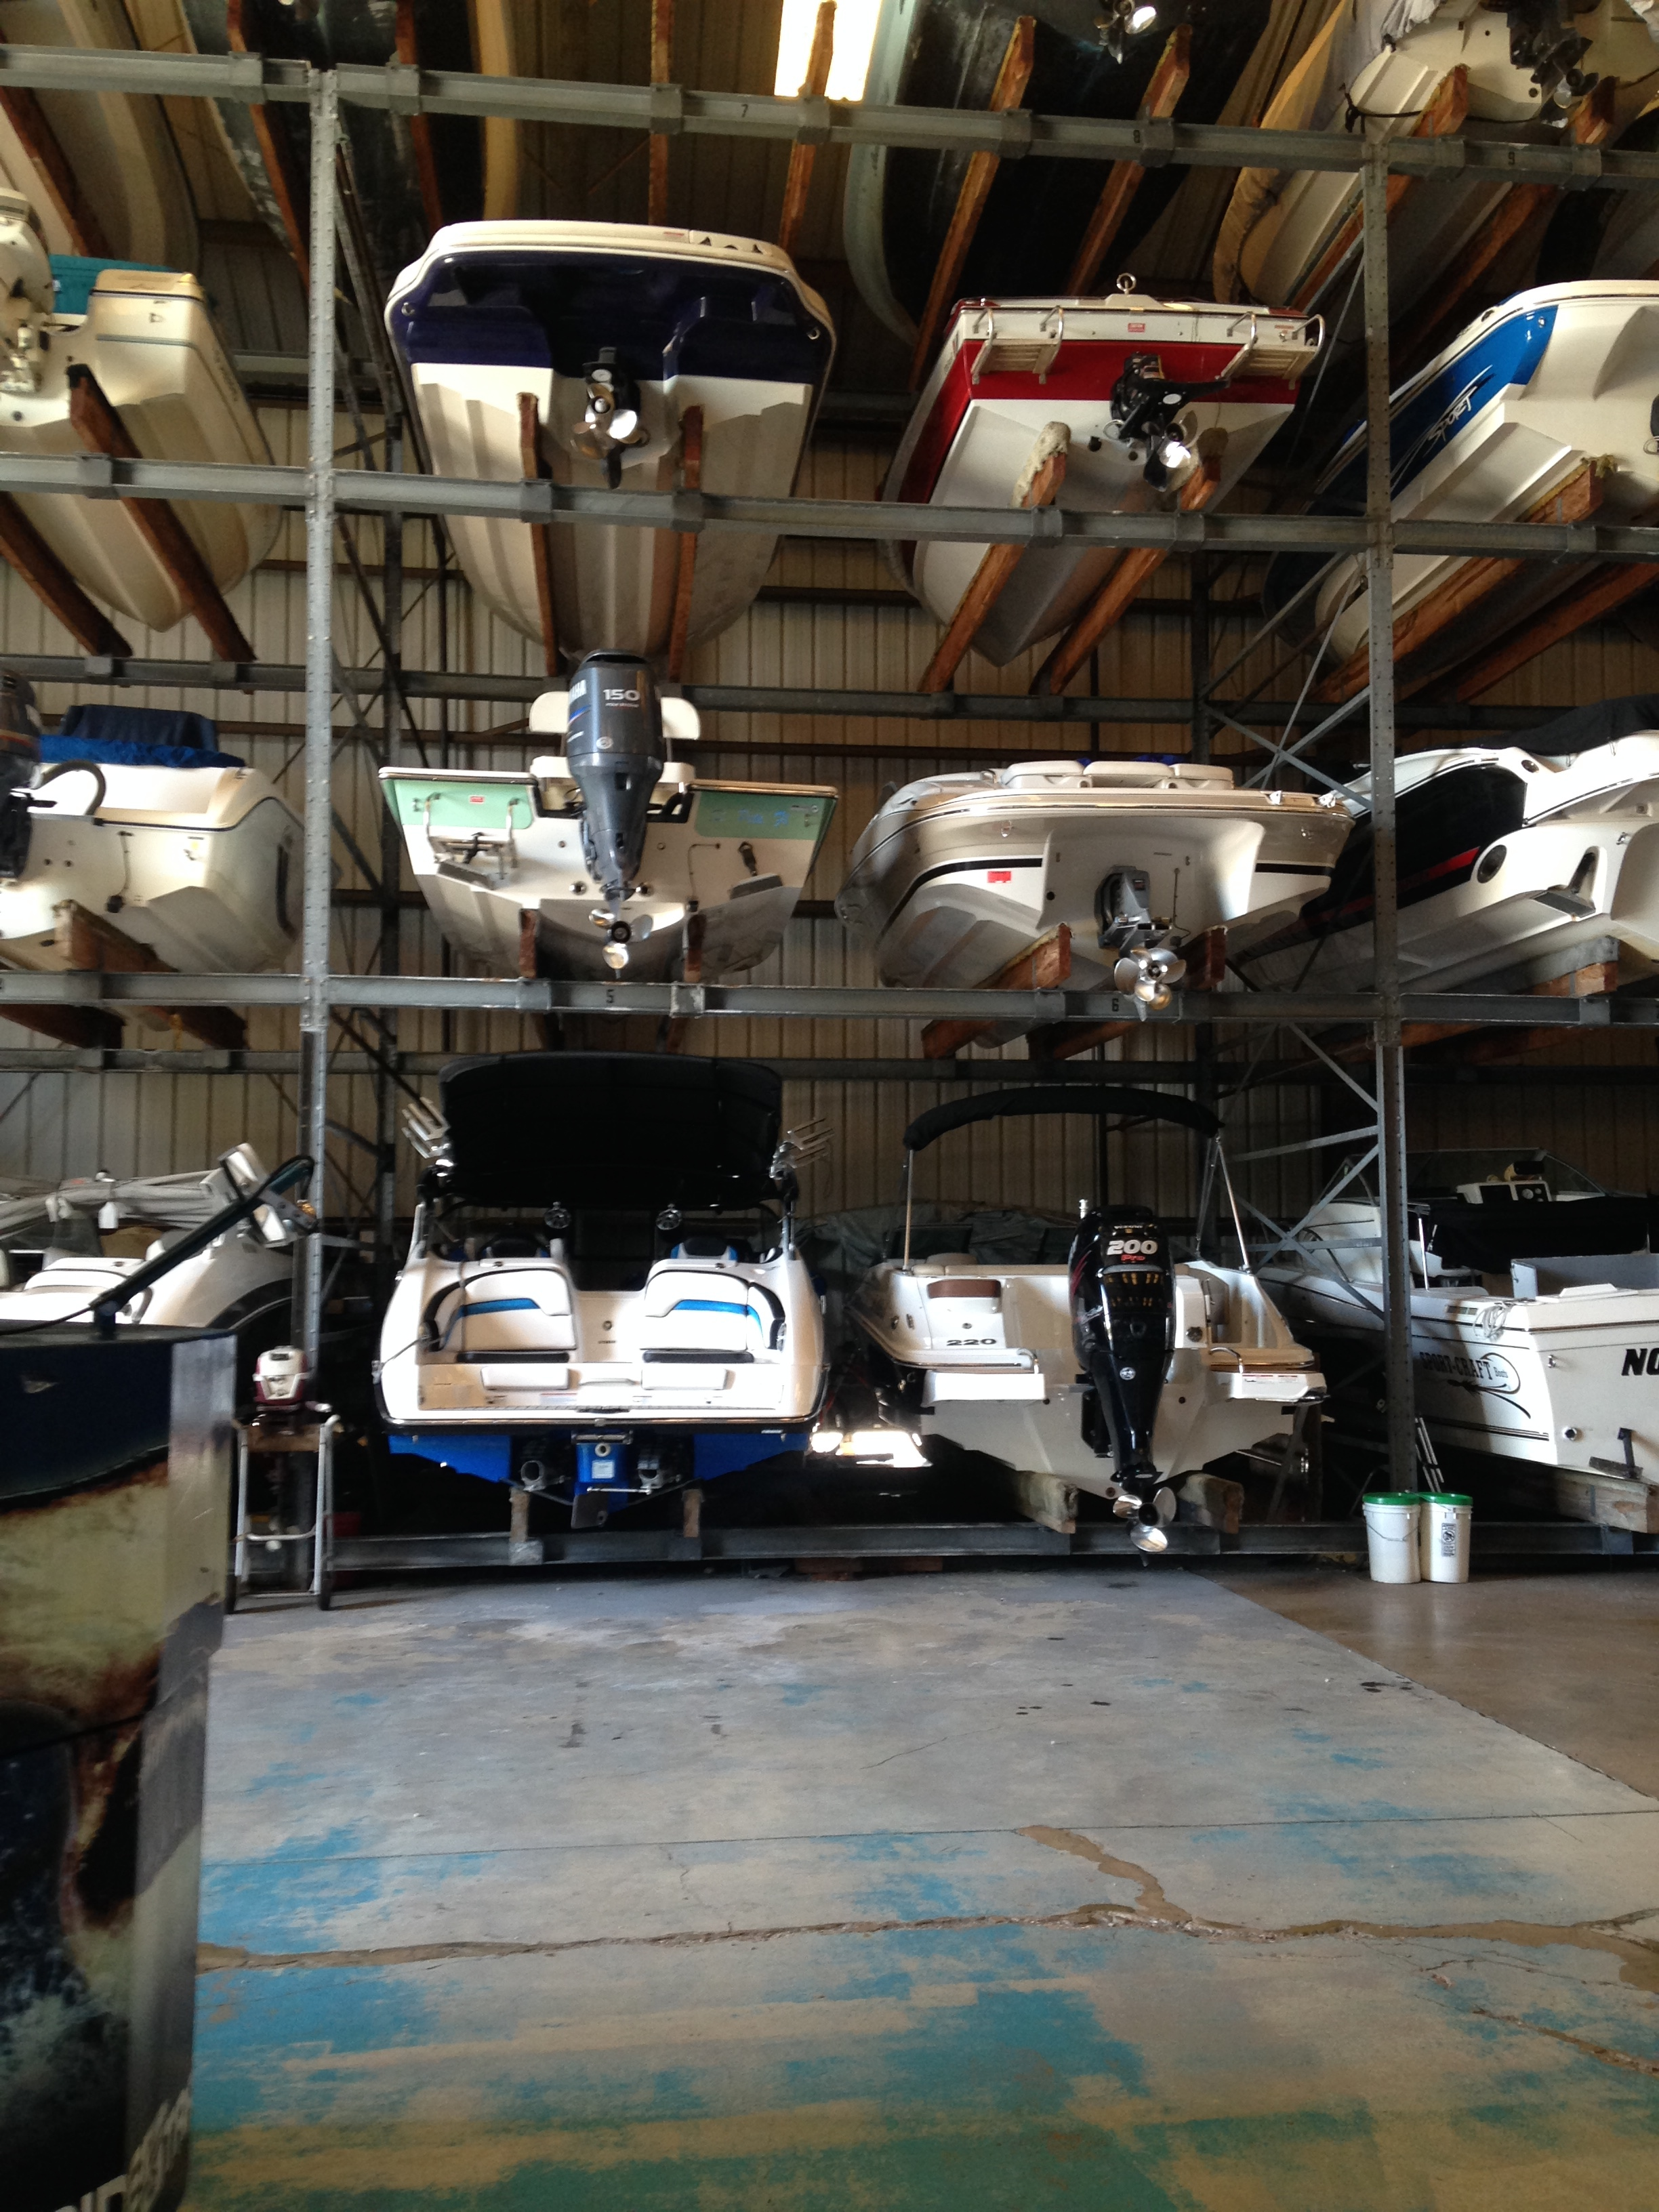 boat storage racks